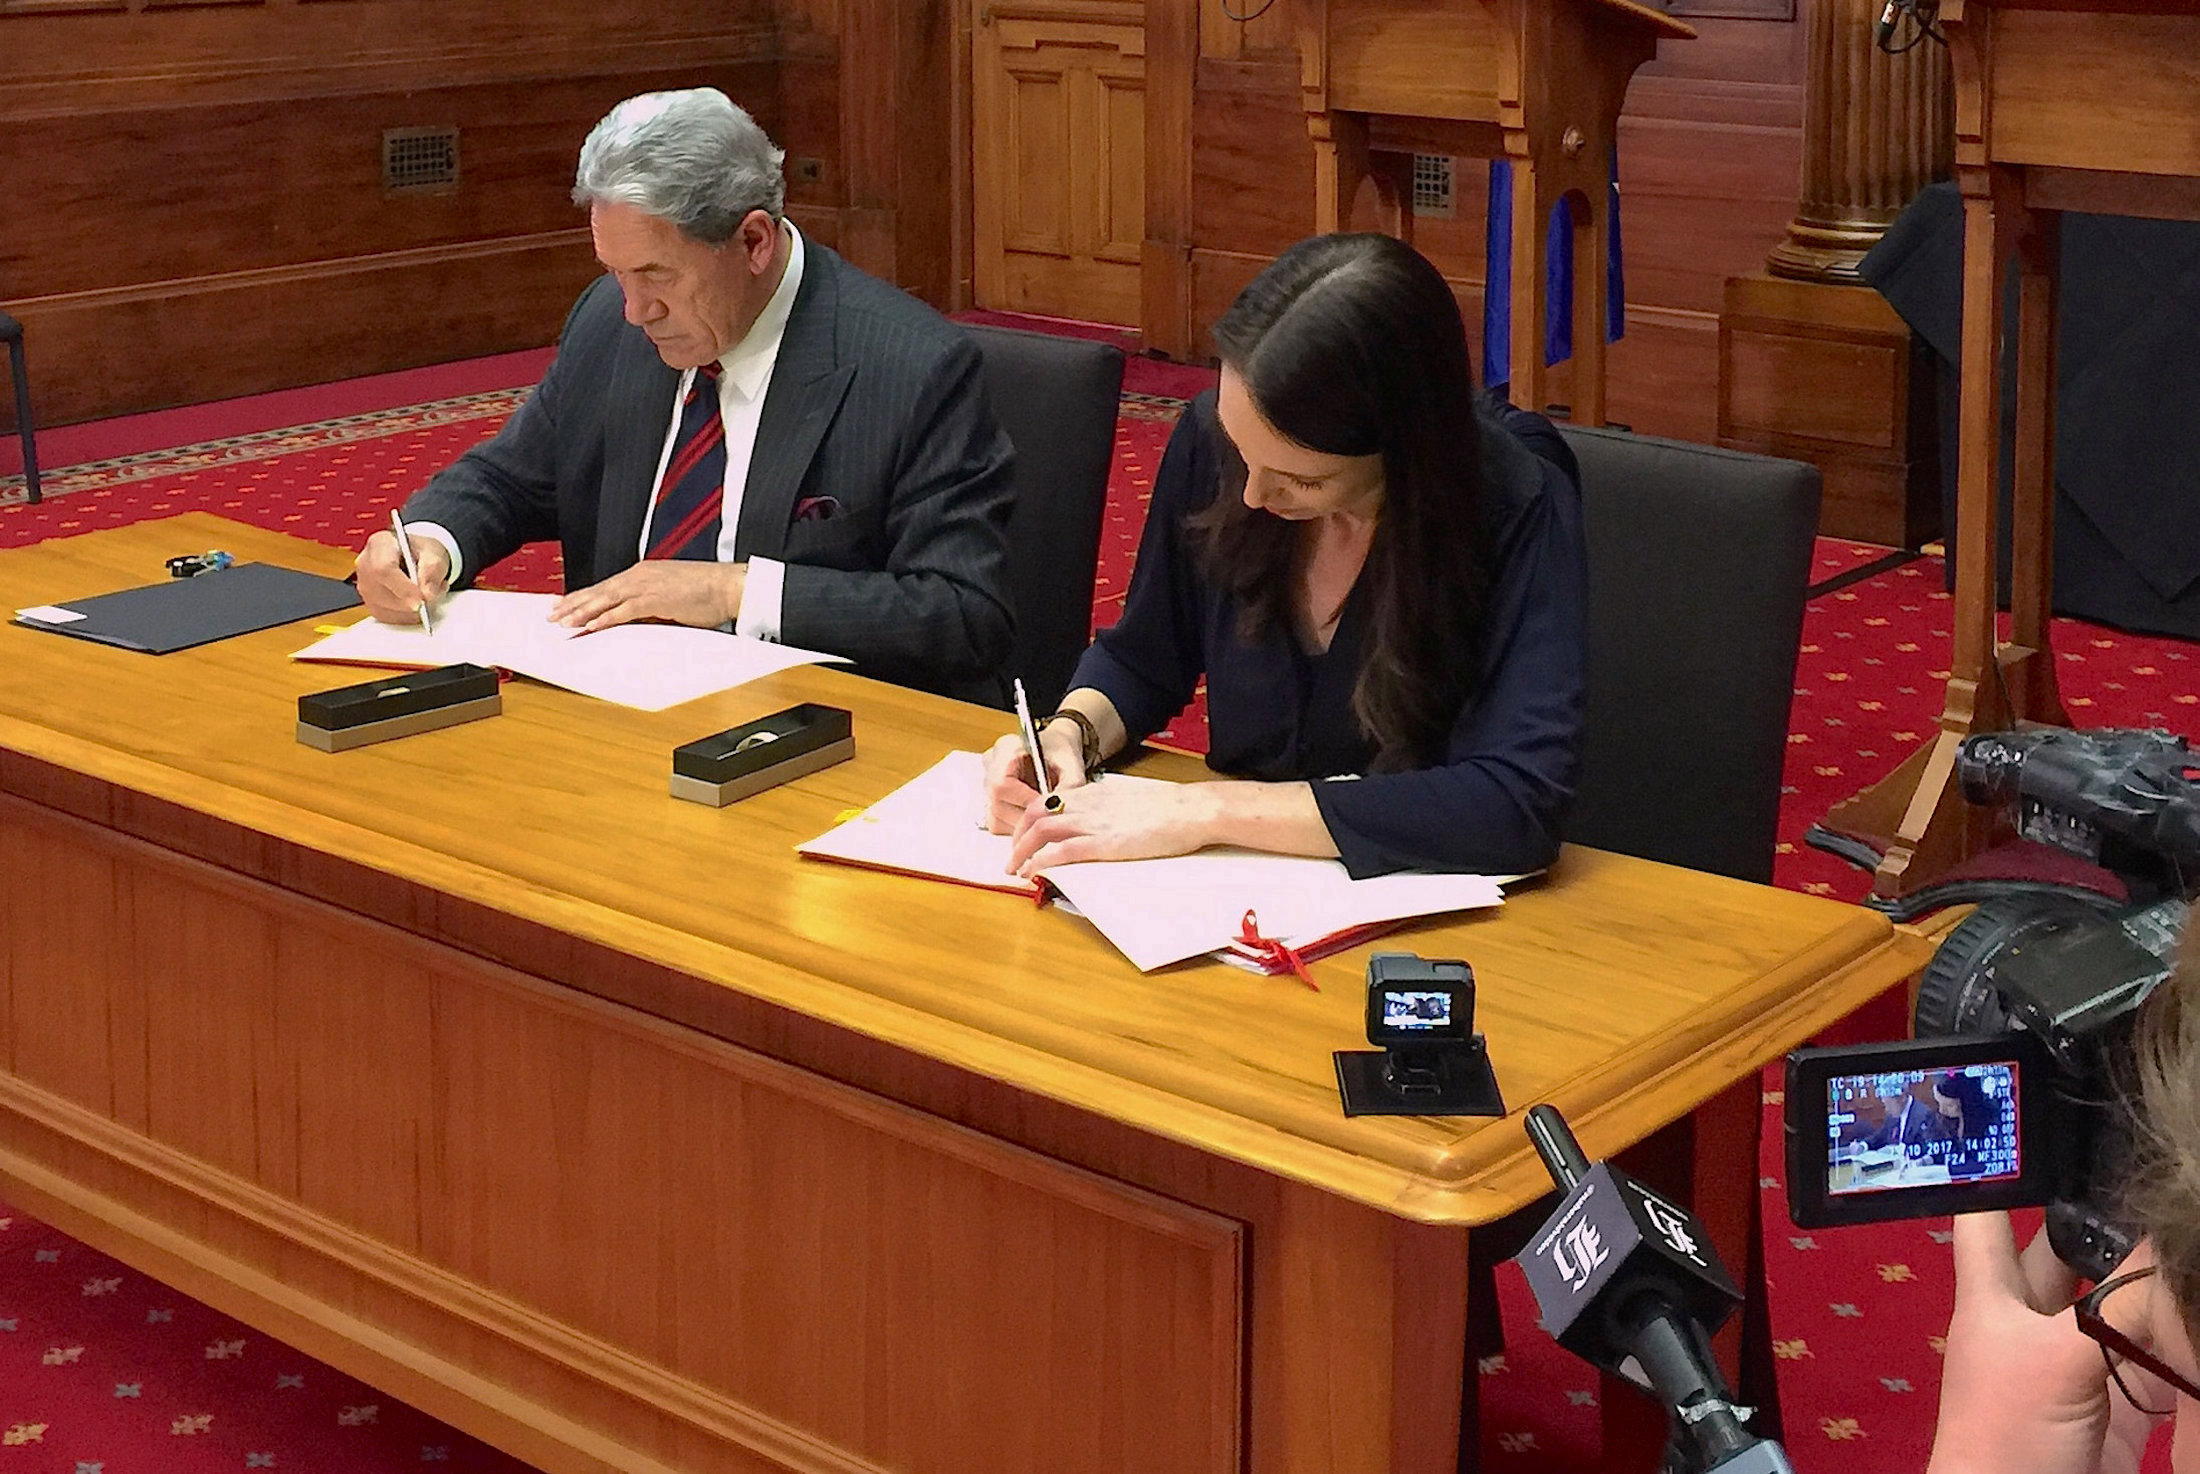 New Zealand protectionist Winston Peters appointed deputy premier, foreign minister